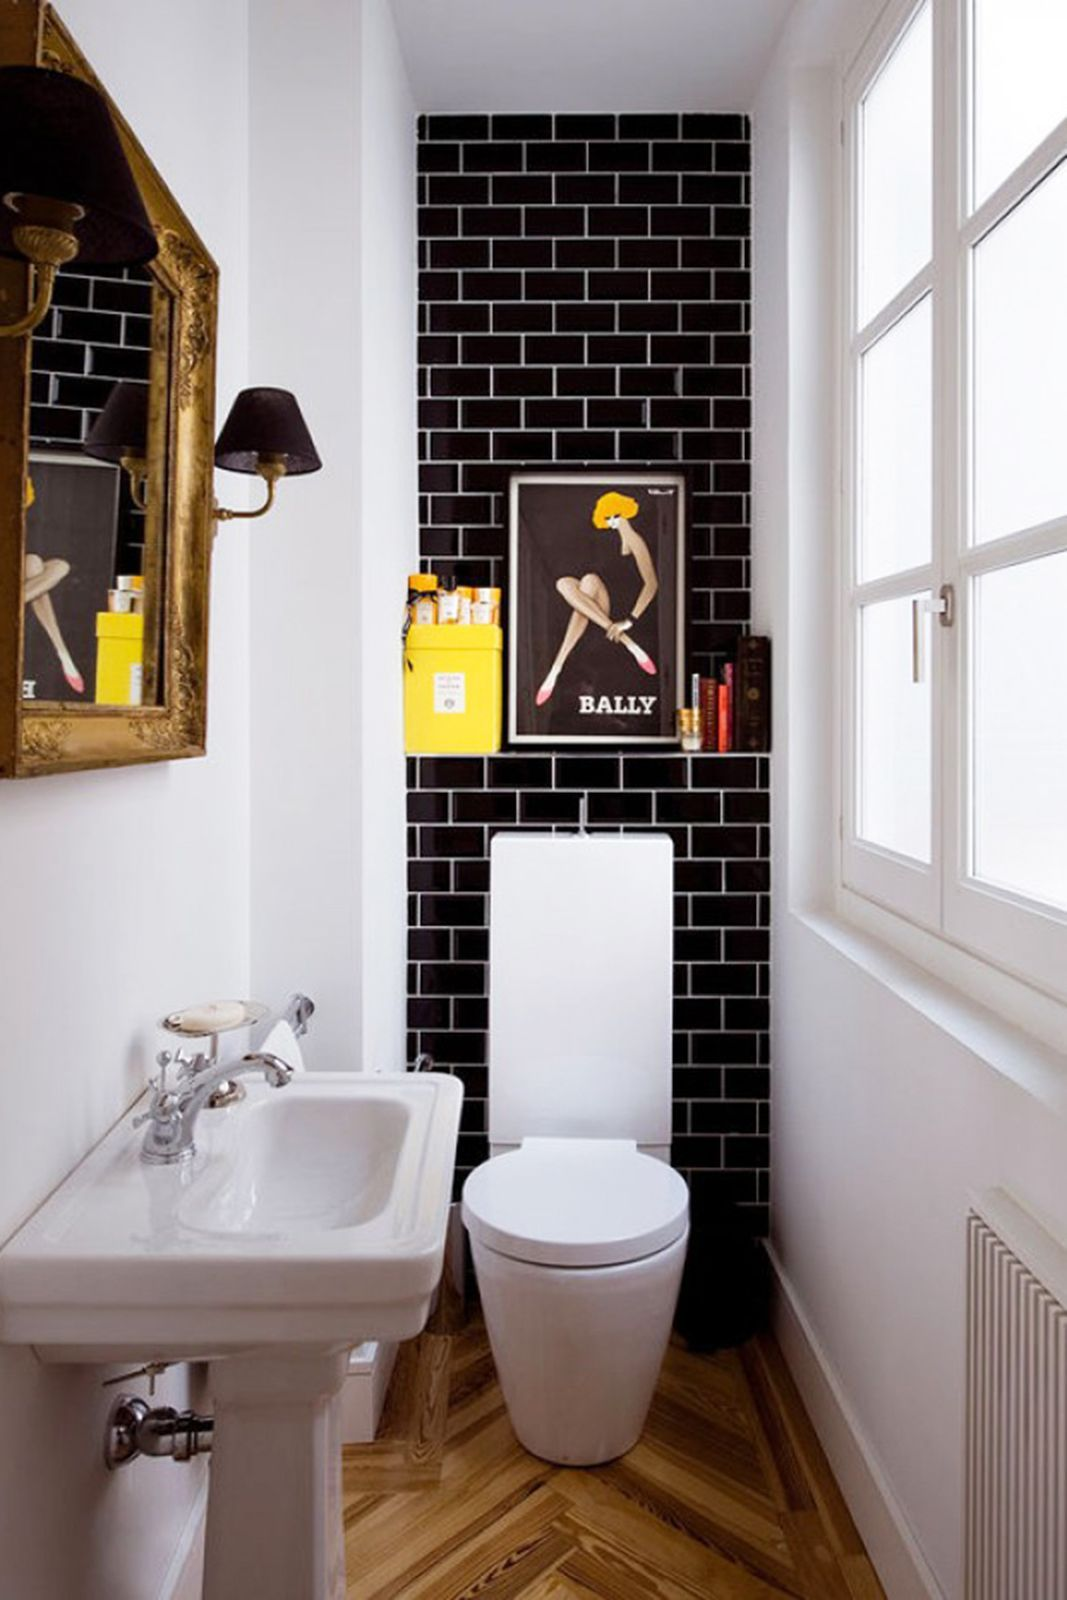 6 Tricks To Make A Small Bathroom Feel Luxurious Small Bathroom Decor Bathroom Design Small Bathroom Inspiration